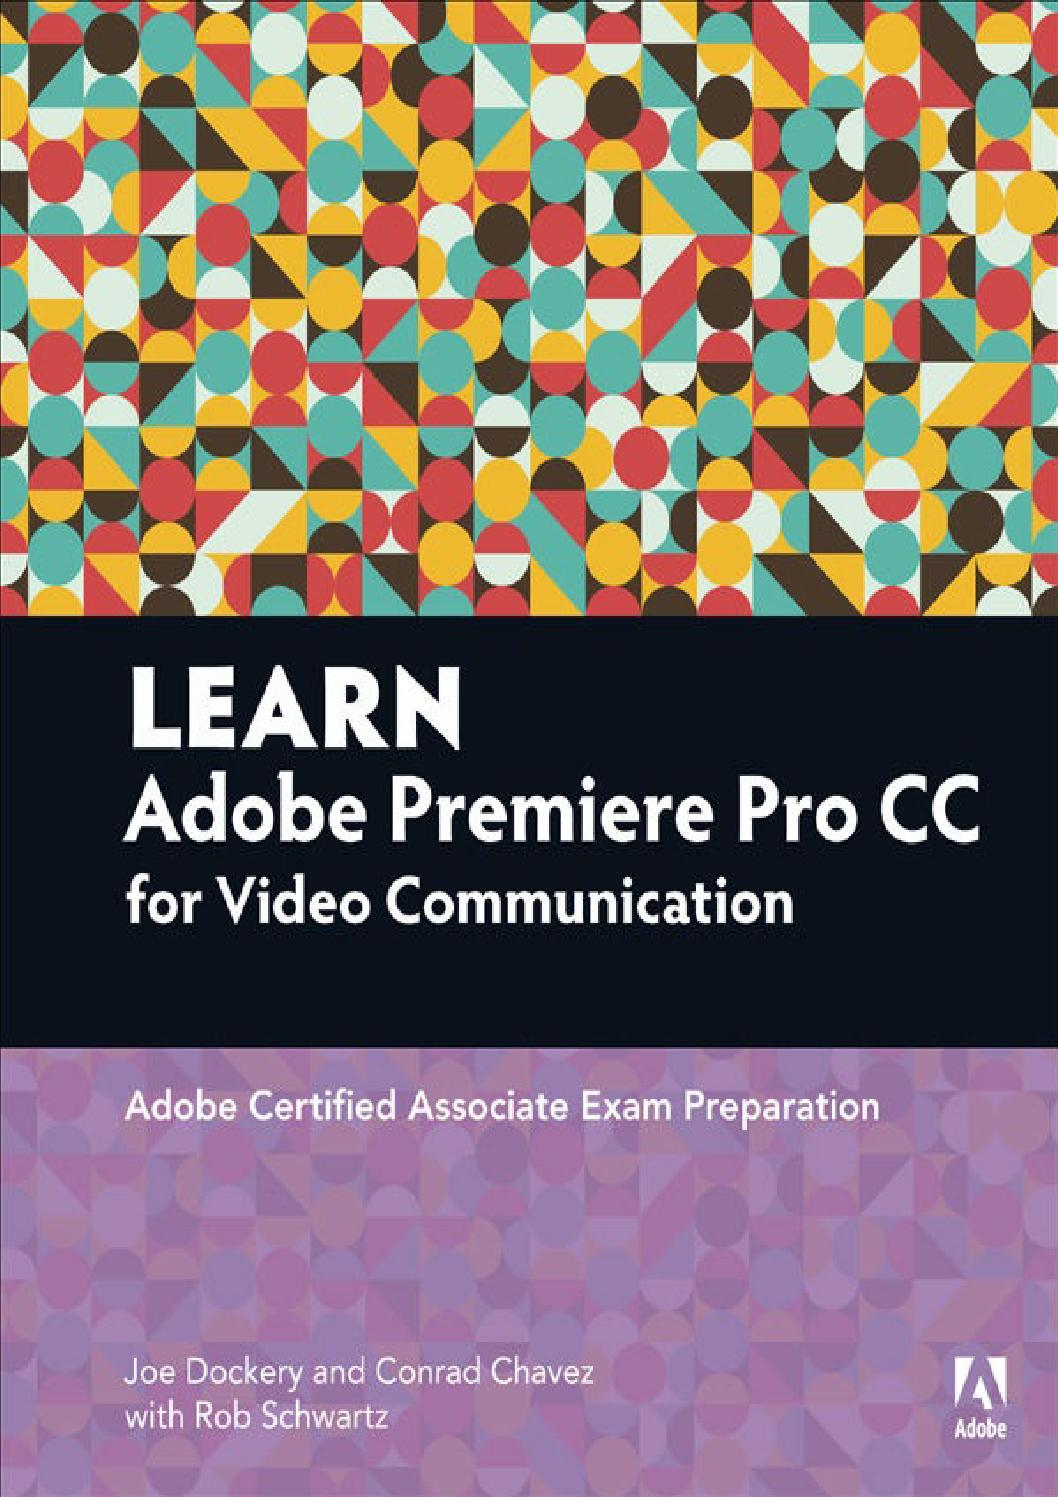 Learn adobe premiere pro cc by arjun fatah - issuu